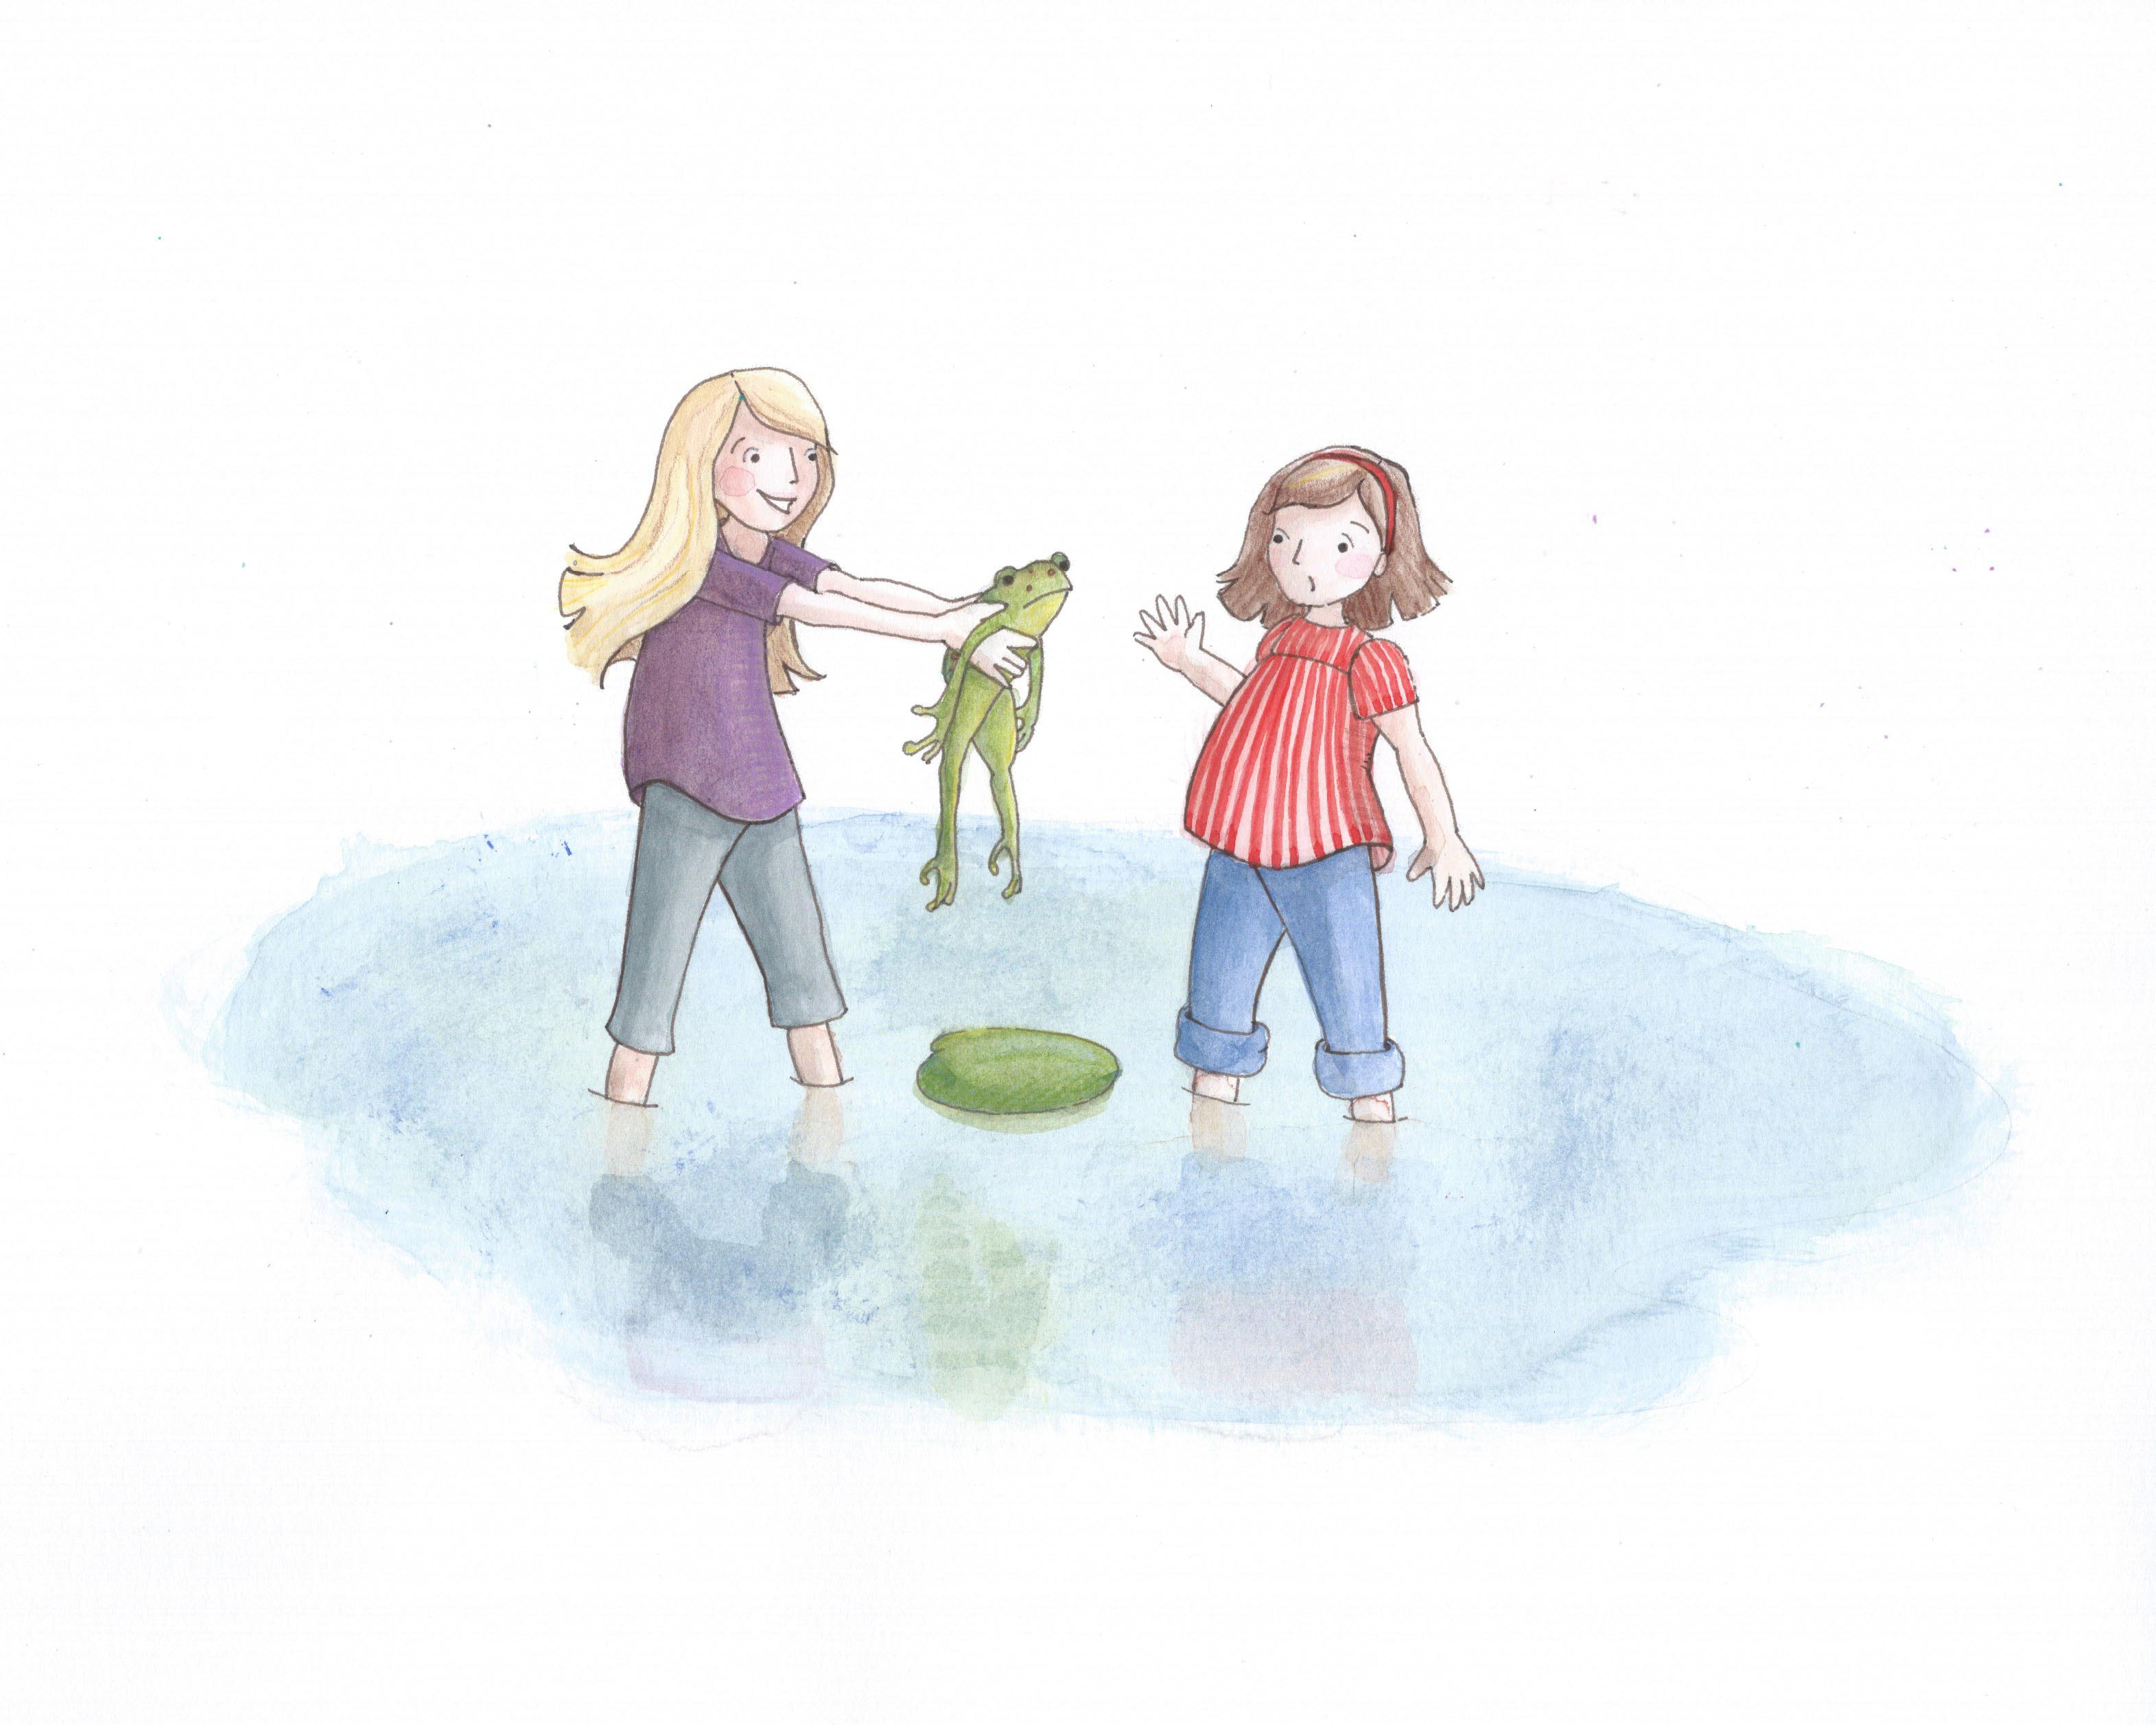 frog & girls 10.1.15 copy.jpg